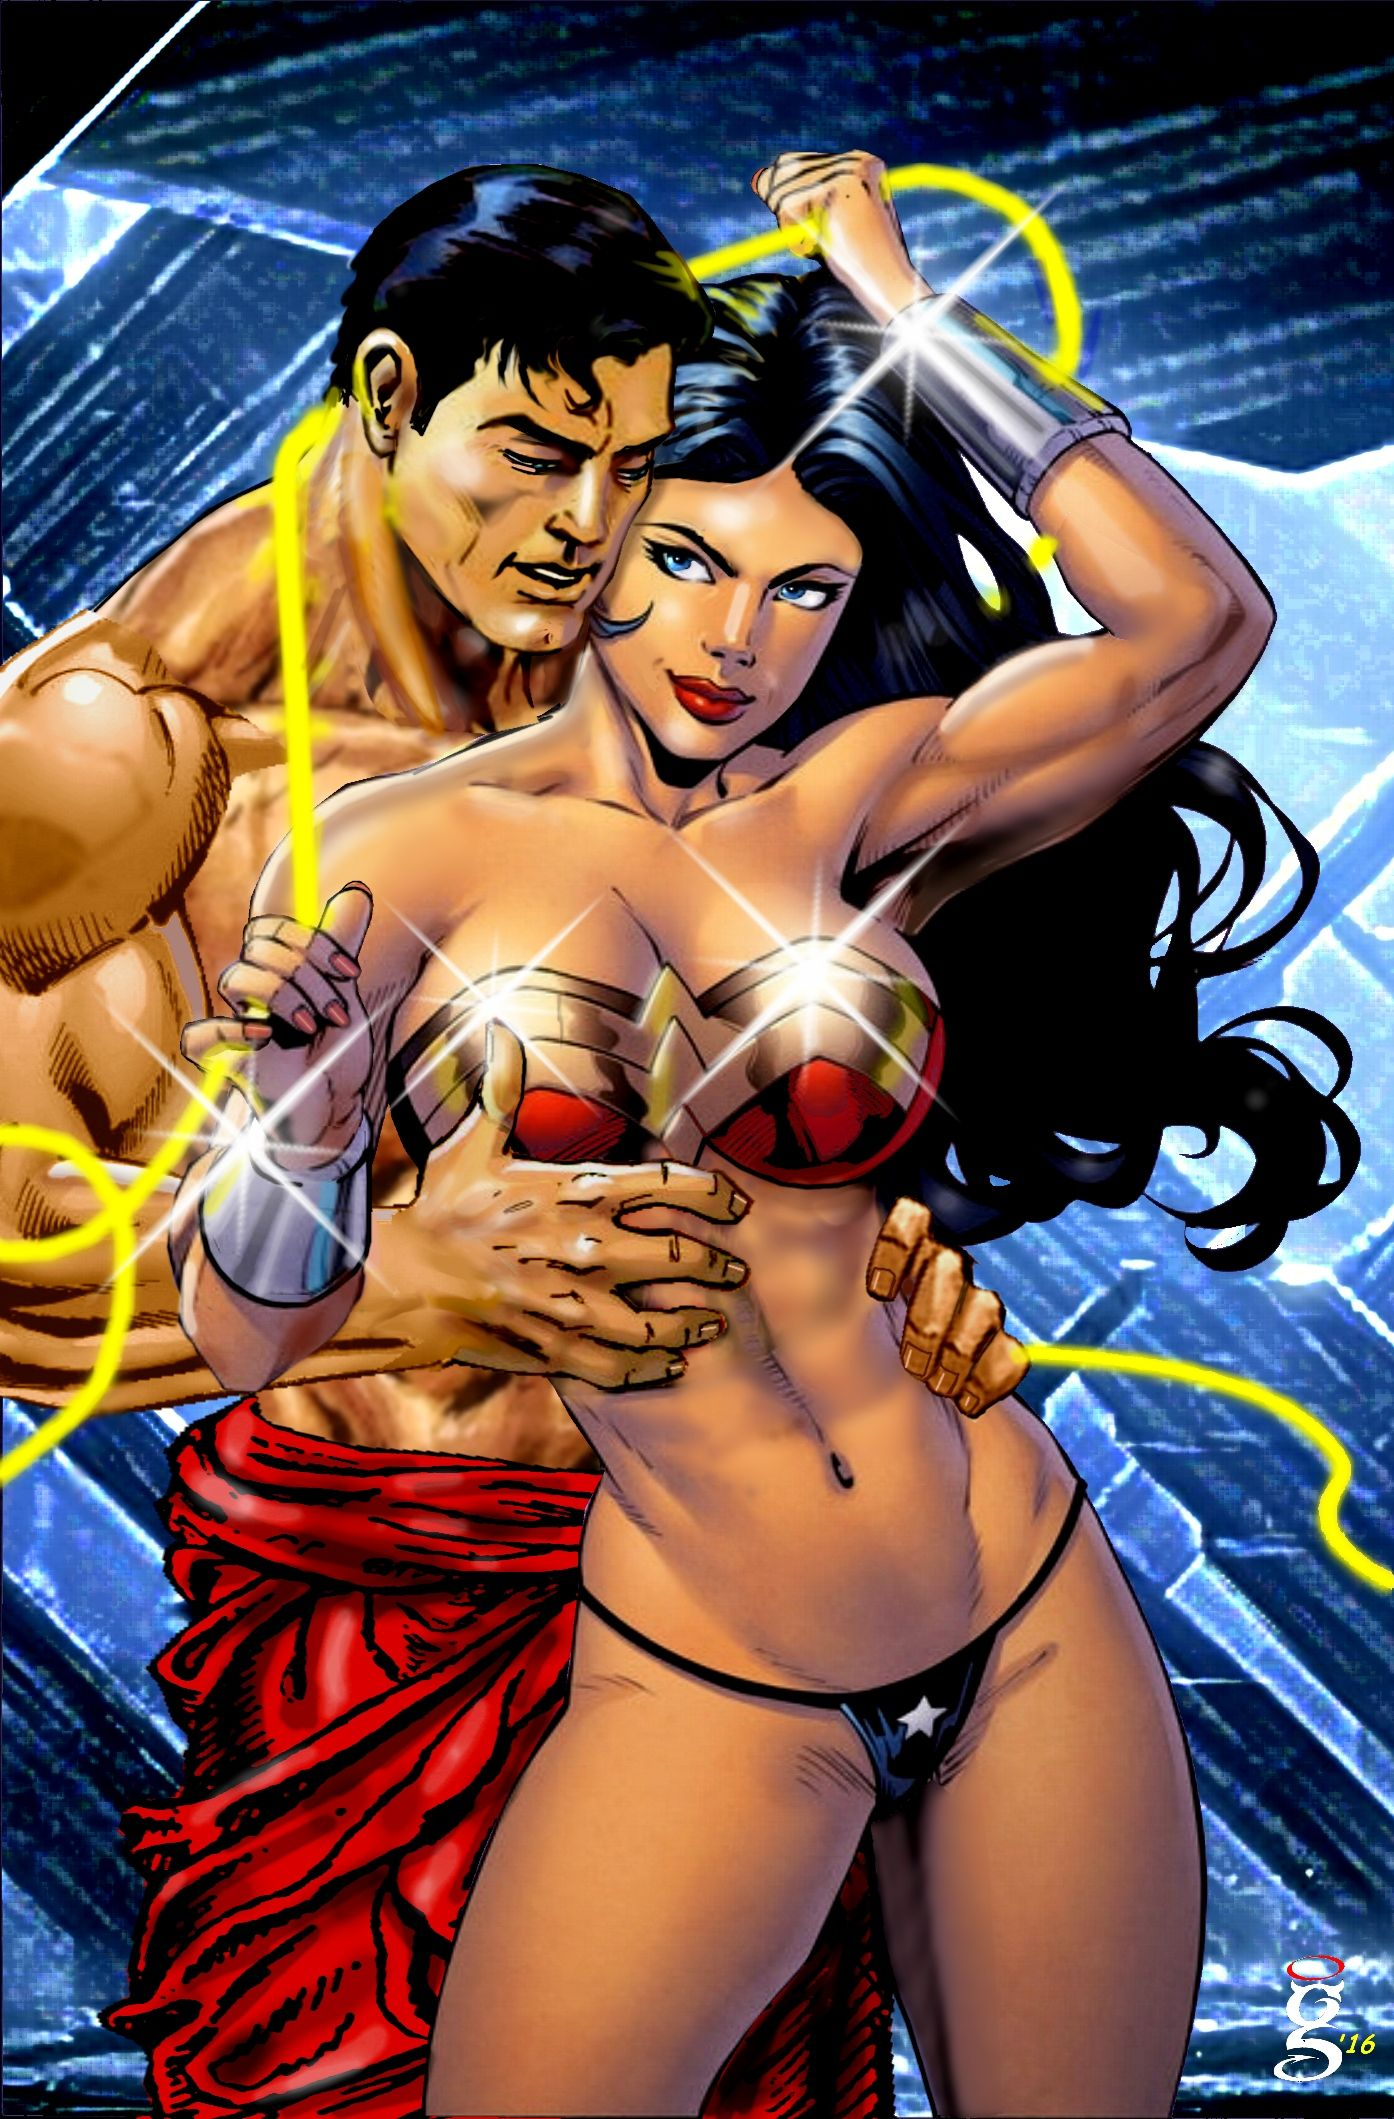 Superman and wonder woman sex